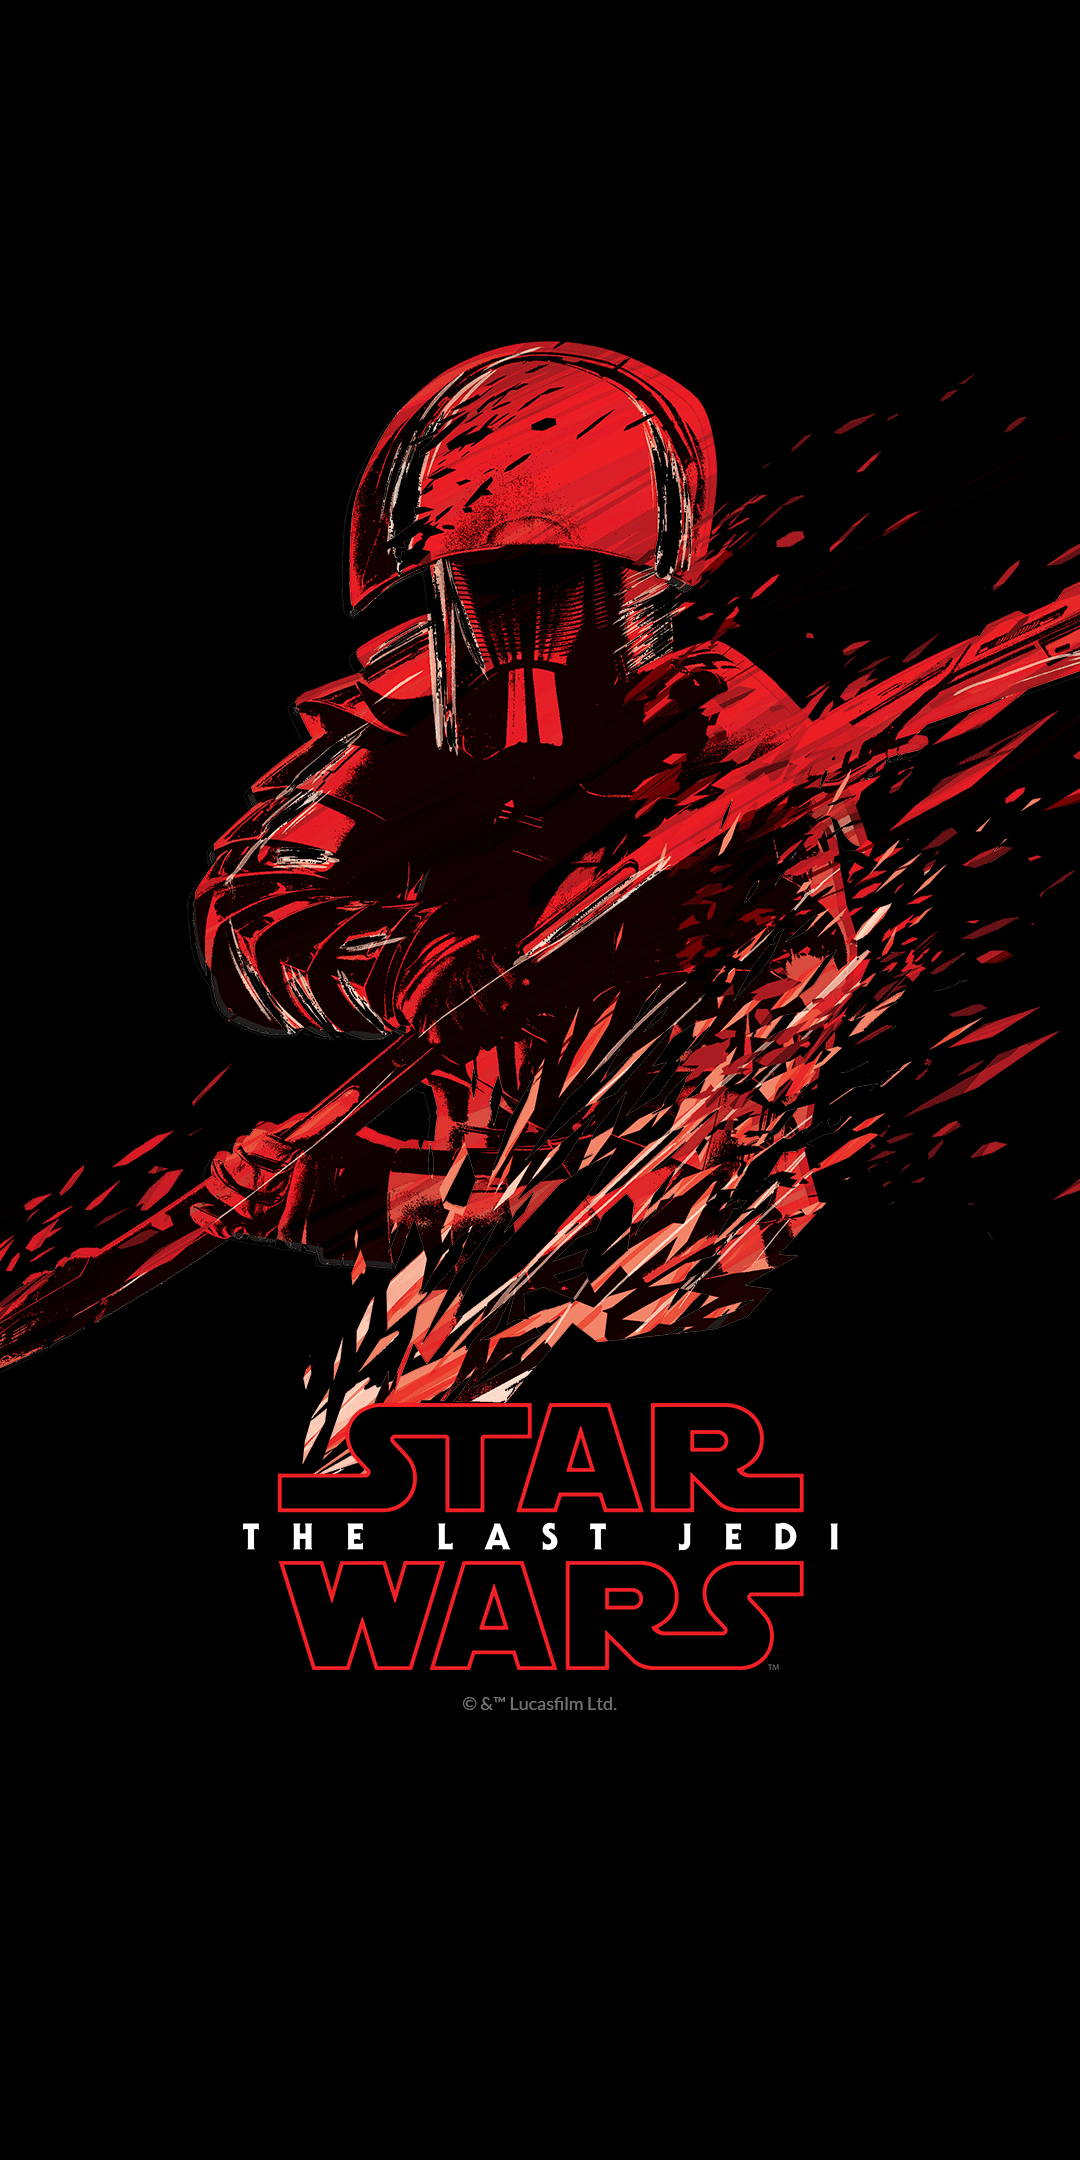 Get all the Star Wars: The Last Jedi wallpapers from the special